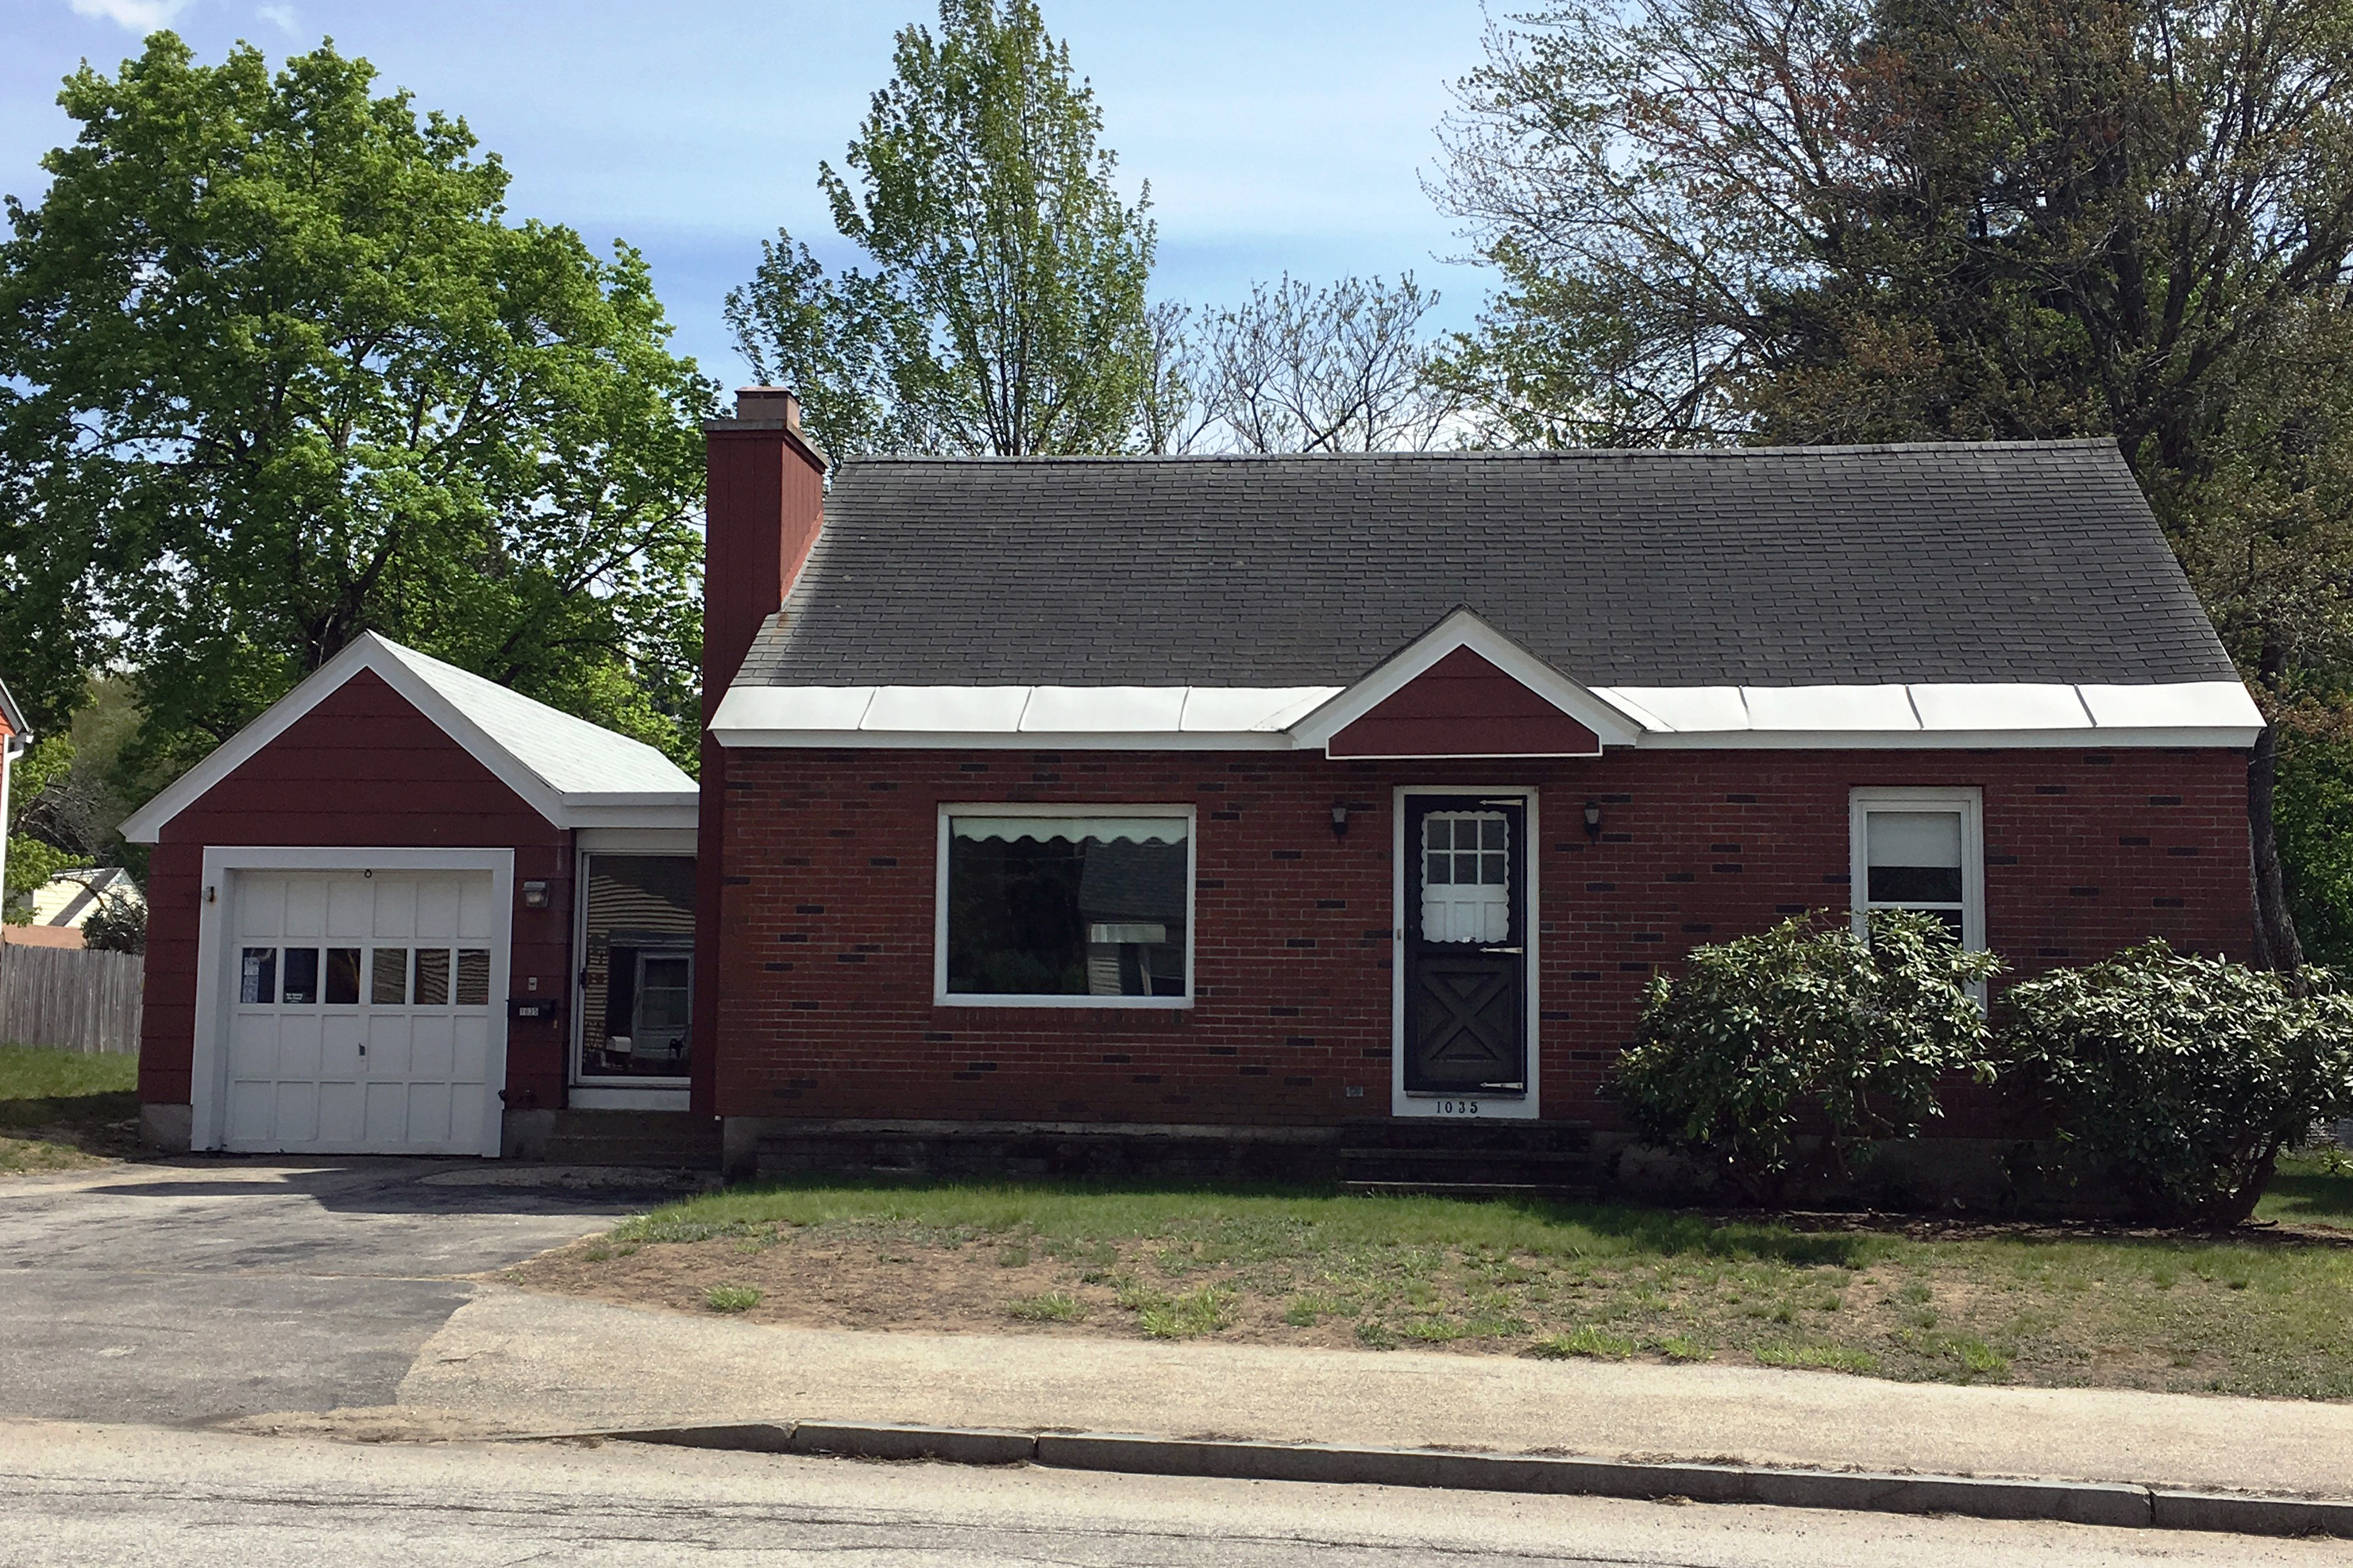 Single Family Home for Sale at 1035 Cilley Rd, Manchester Manchester, New Hampshire, 03103 United States